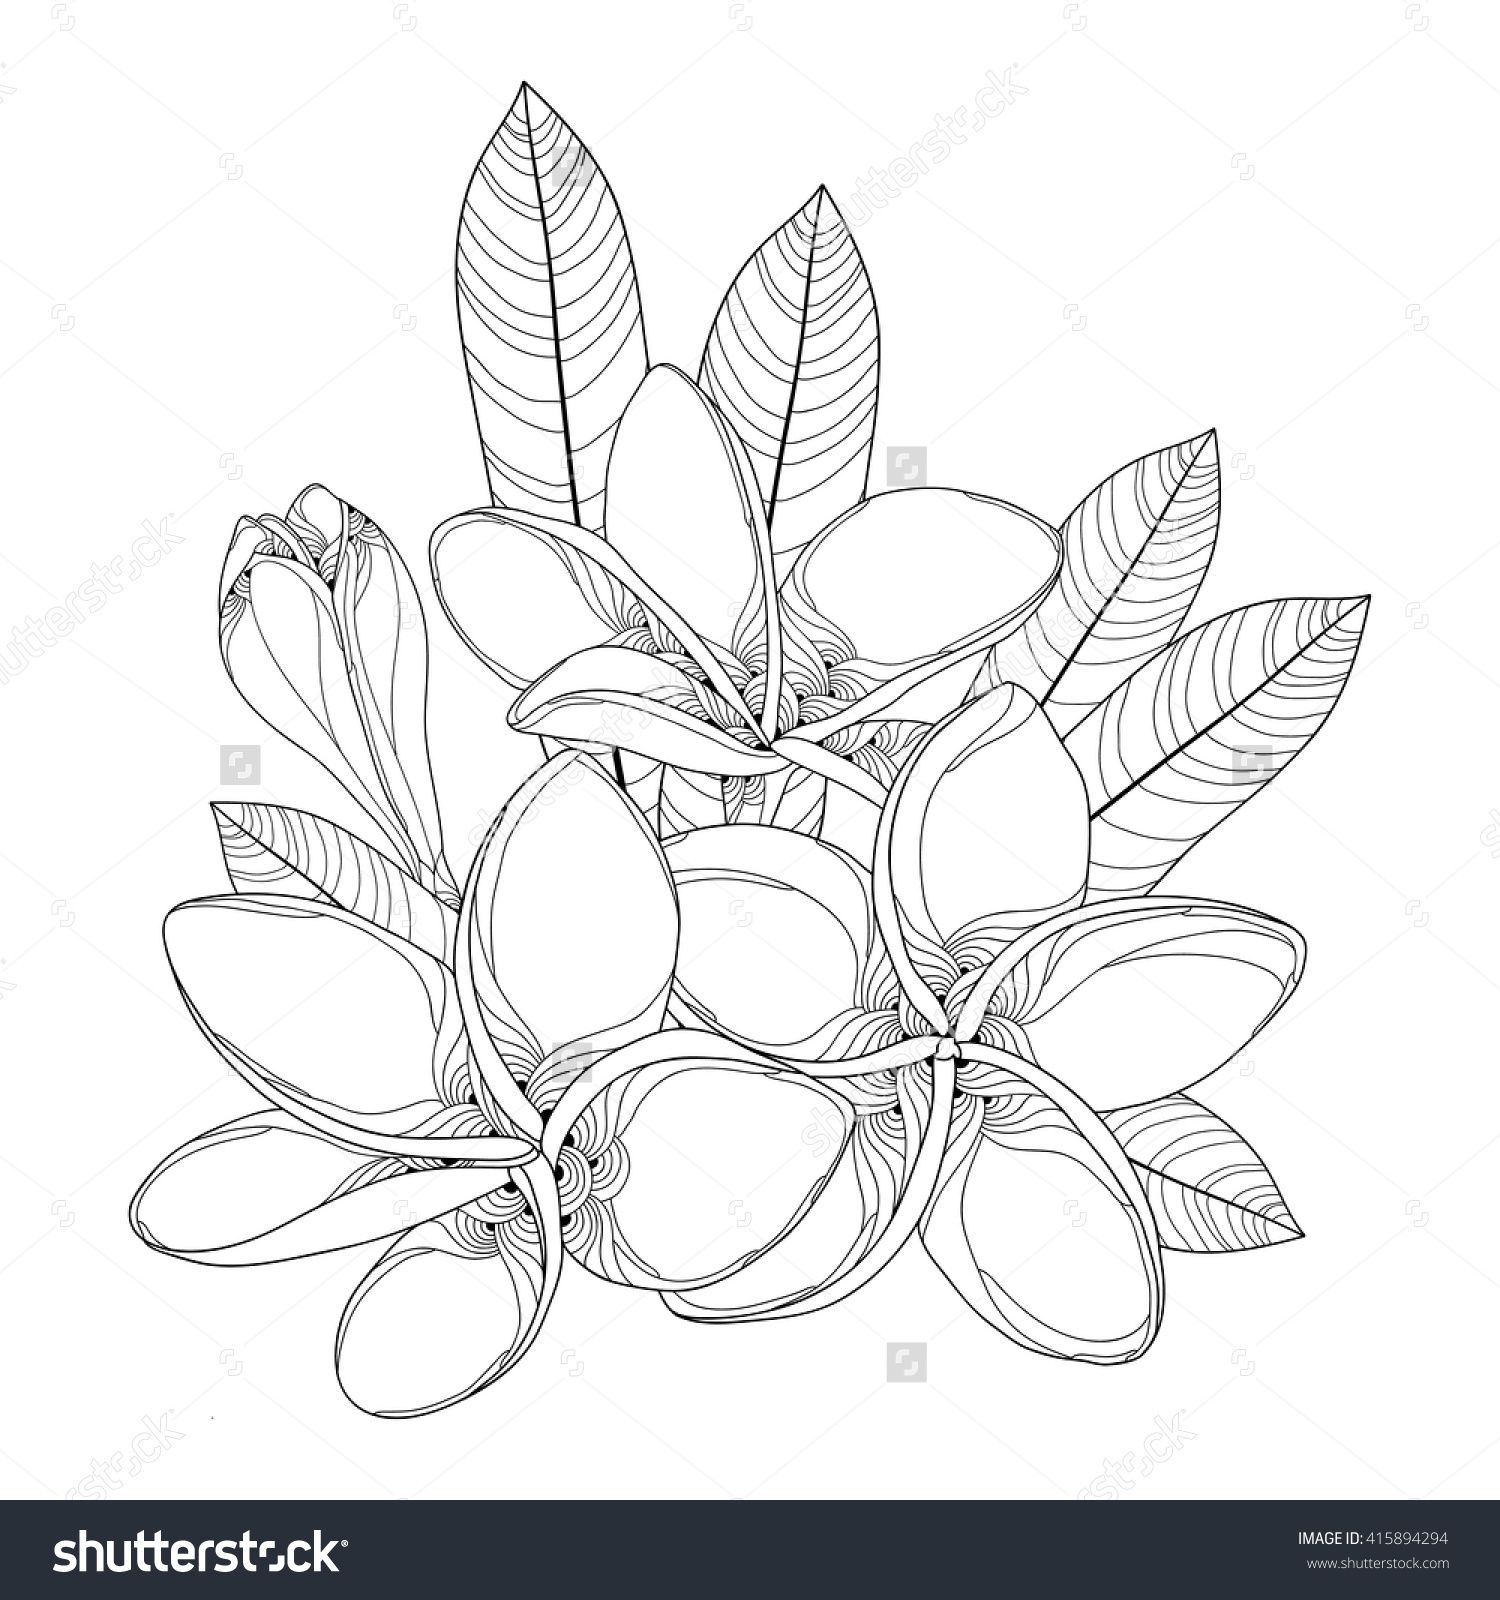 Coloring pages of flower buds - Stock Vector Bouquet With Ornate Plumeria Or Frangipani